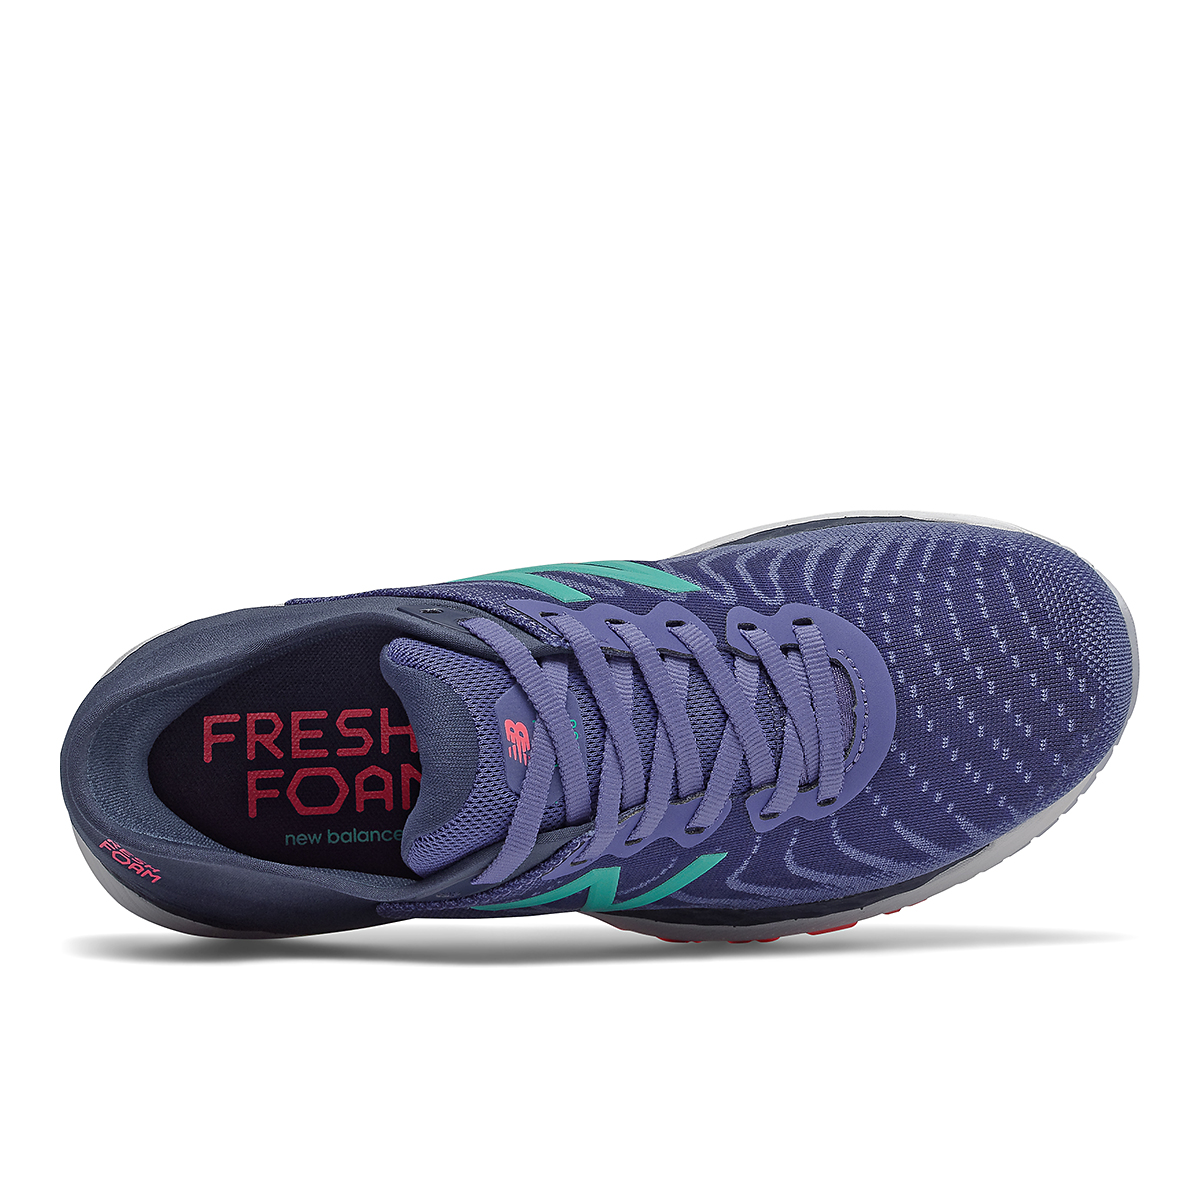 Women's New Balance 860V11 Running Shoe - Color: Magnetic Blue - Size: 5 - Width: Narrow, Magnetic Blue, large, image 3